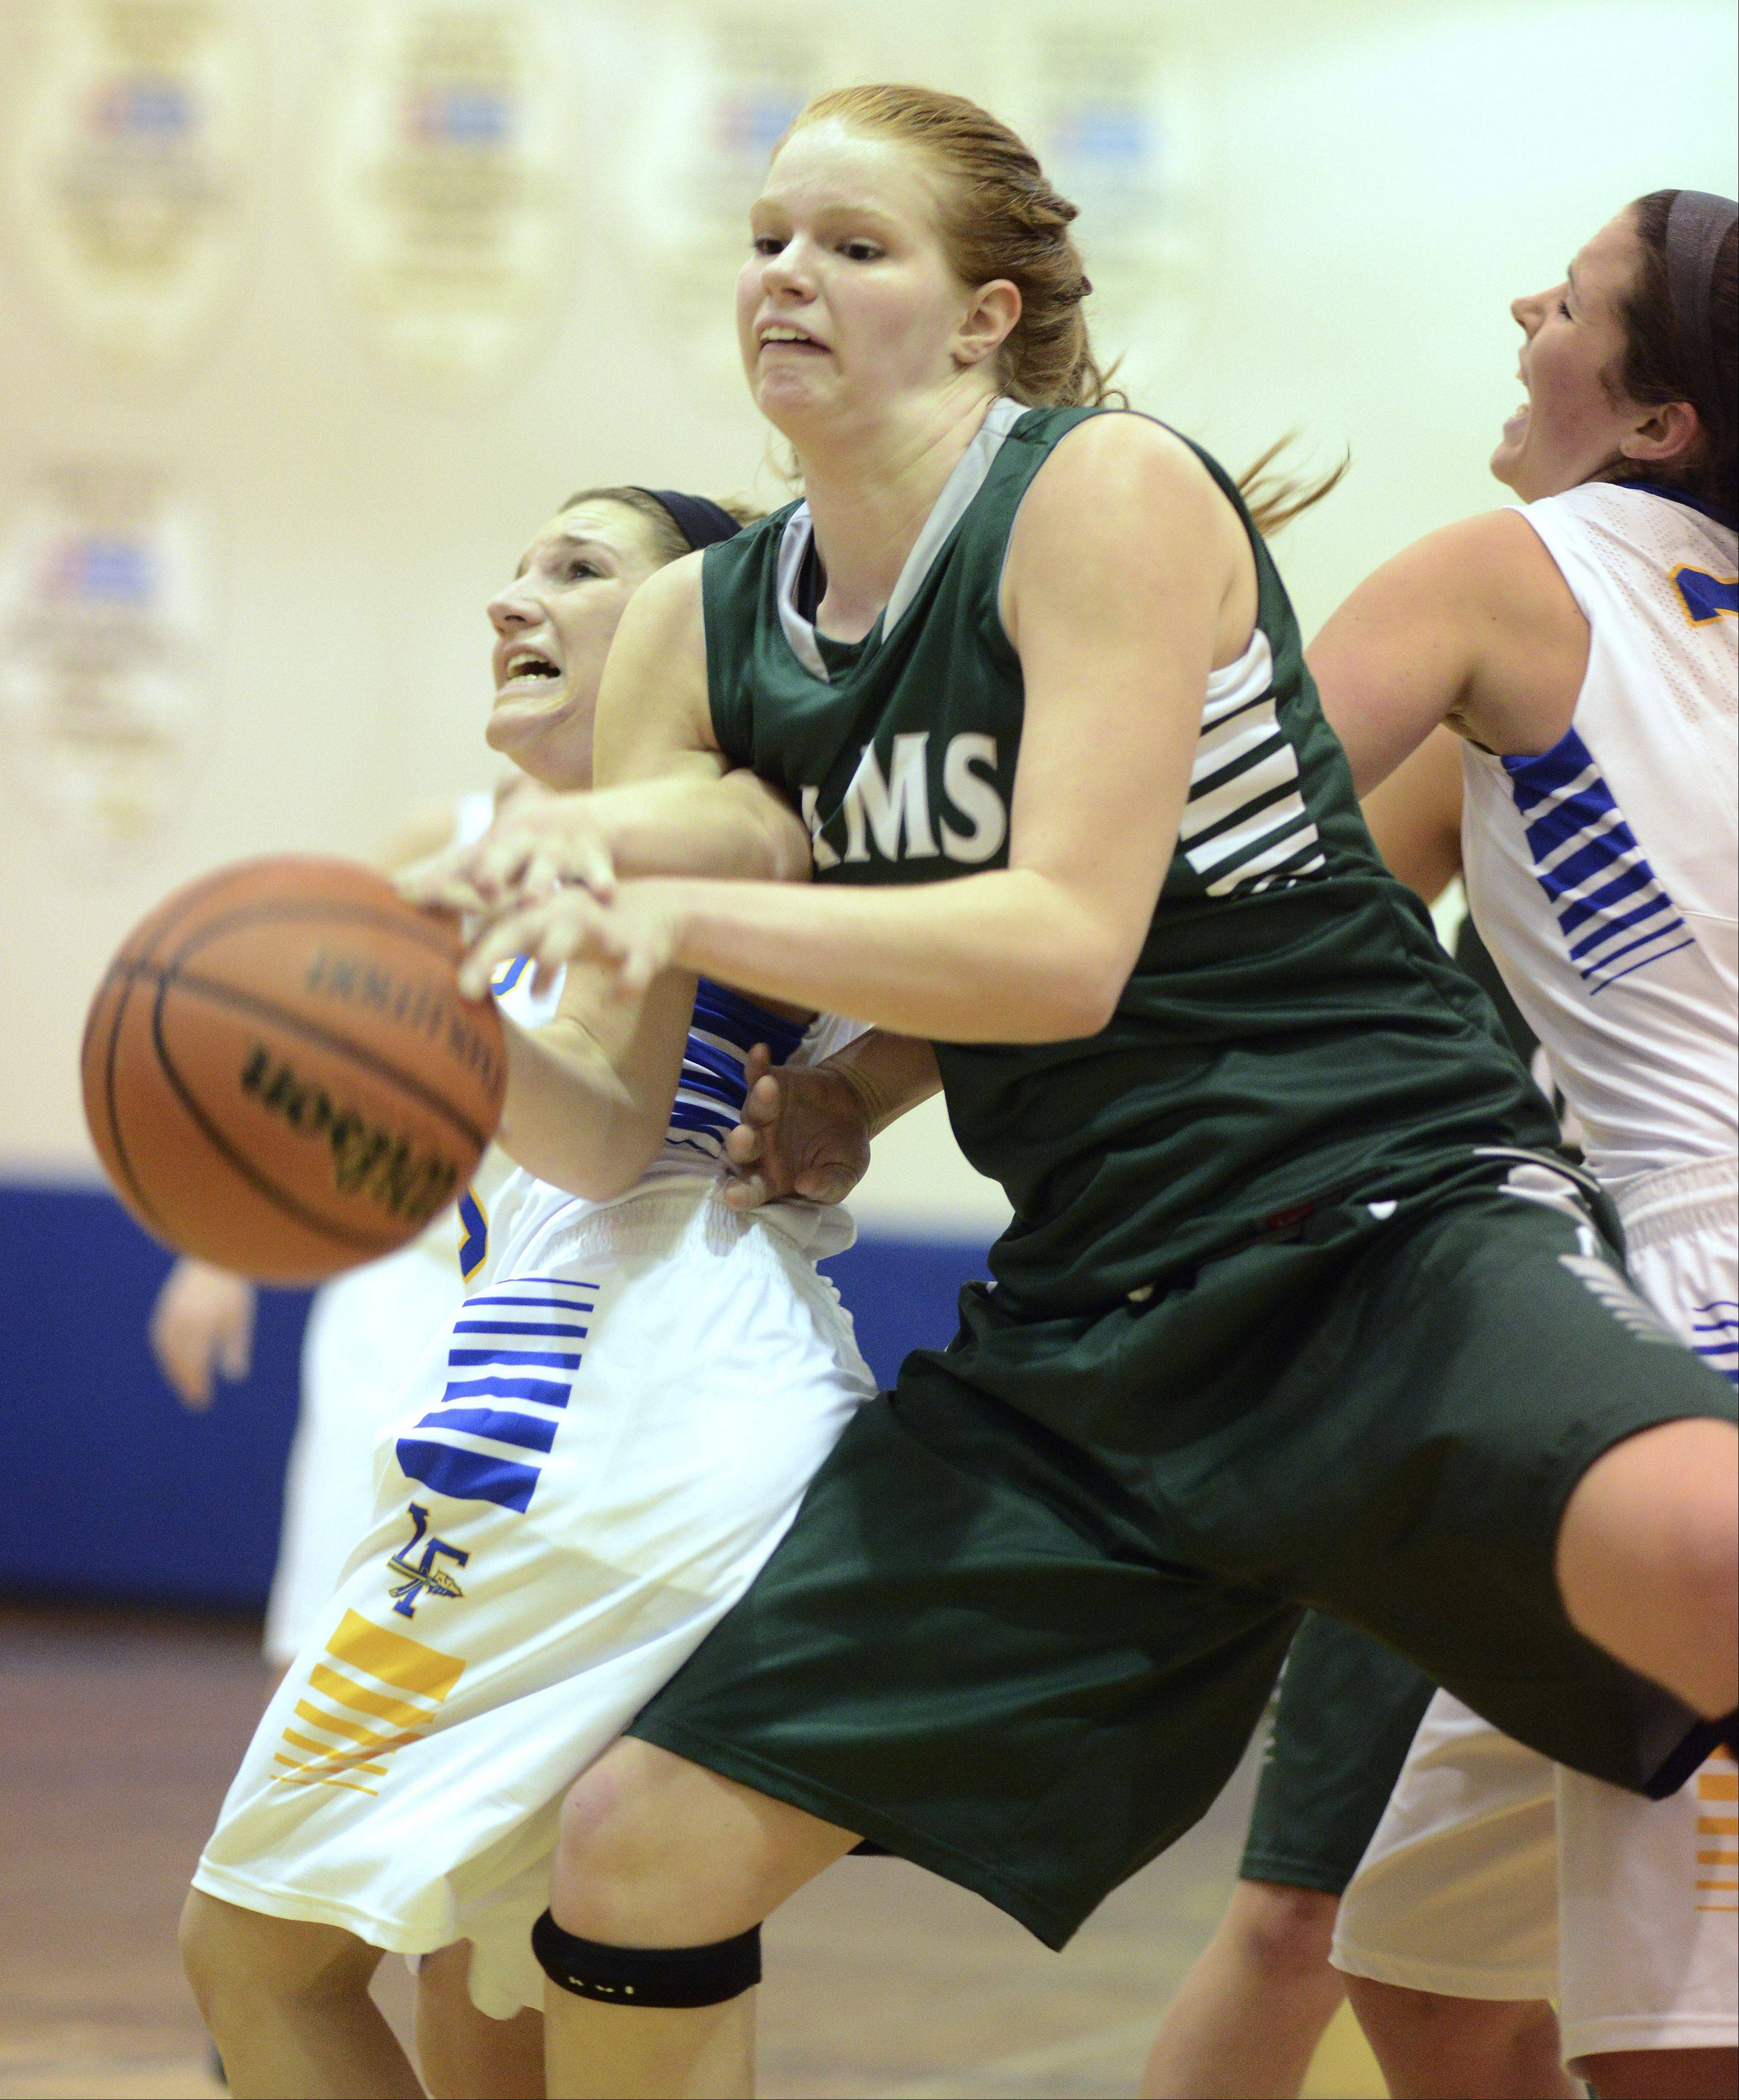 Grayslake Central's Morgan Dahlstrom, middle, draws contact while driving through Lake Forest's Gabby Perino, left, and Annie Keller during Saturday's game at Warren.